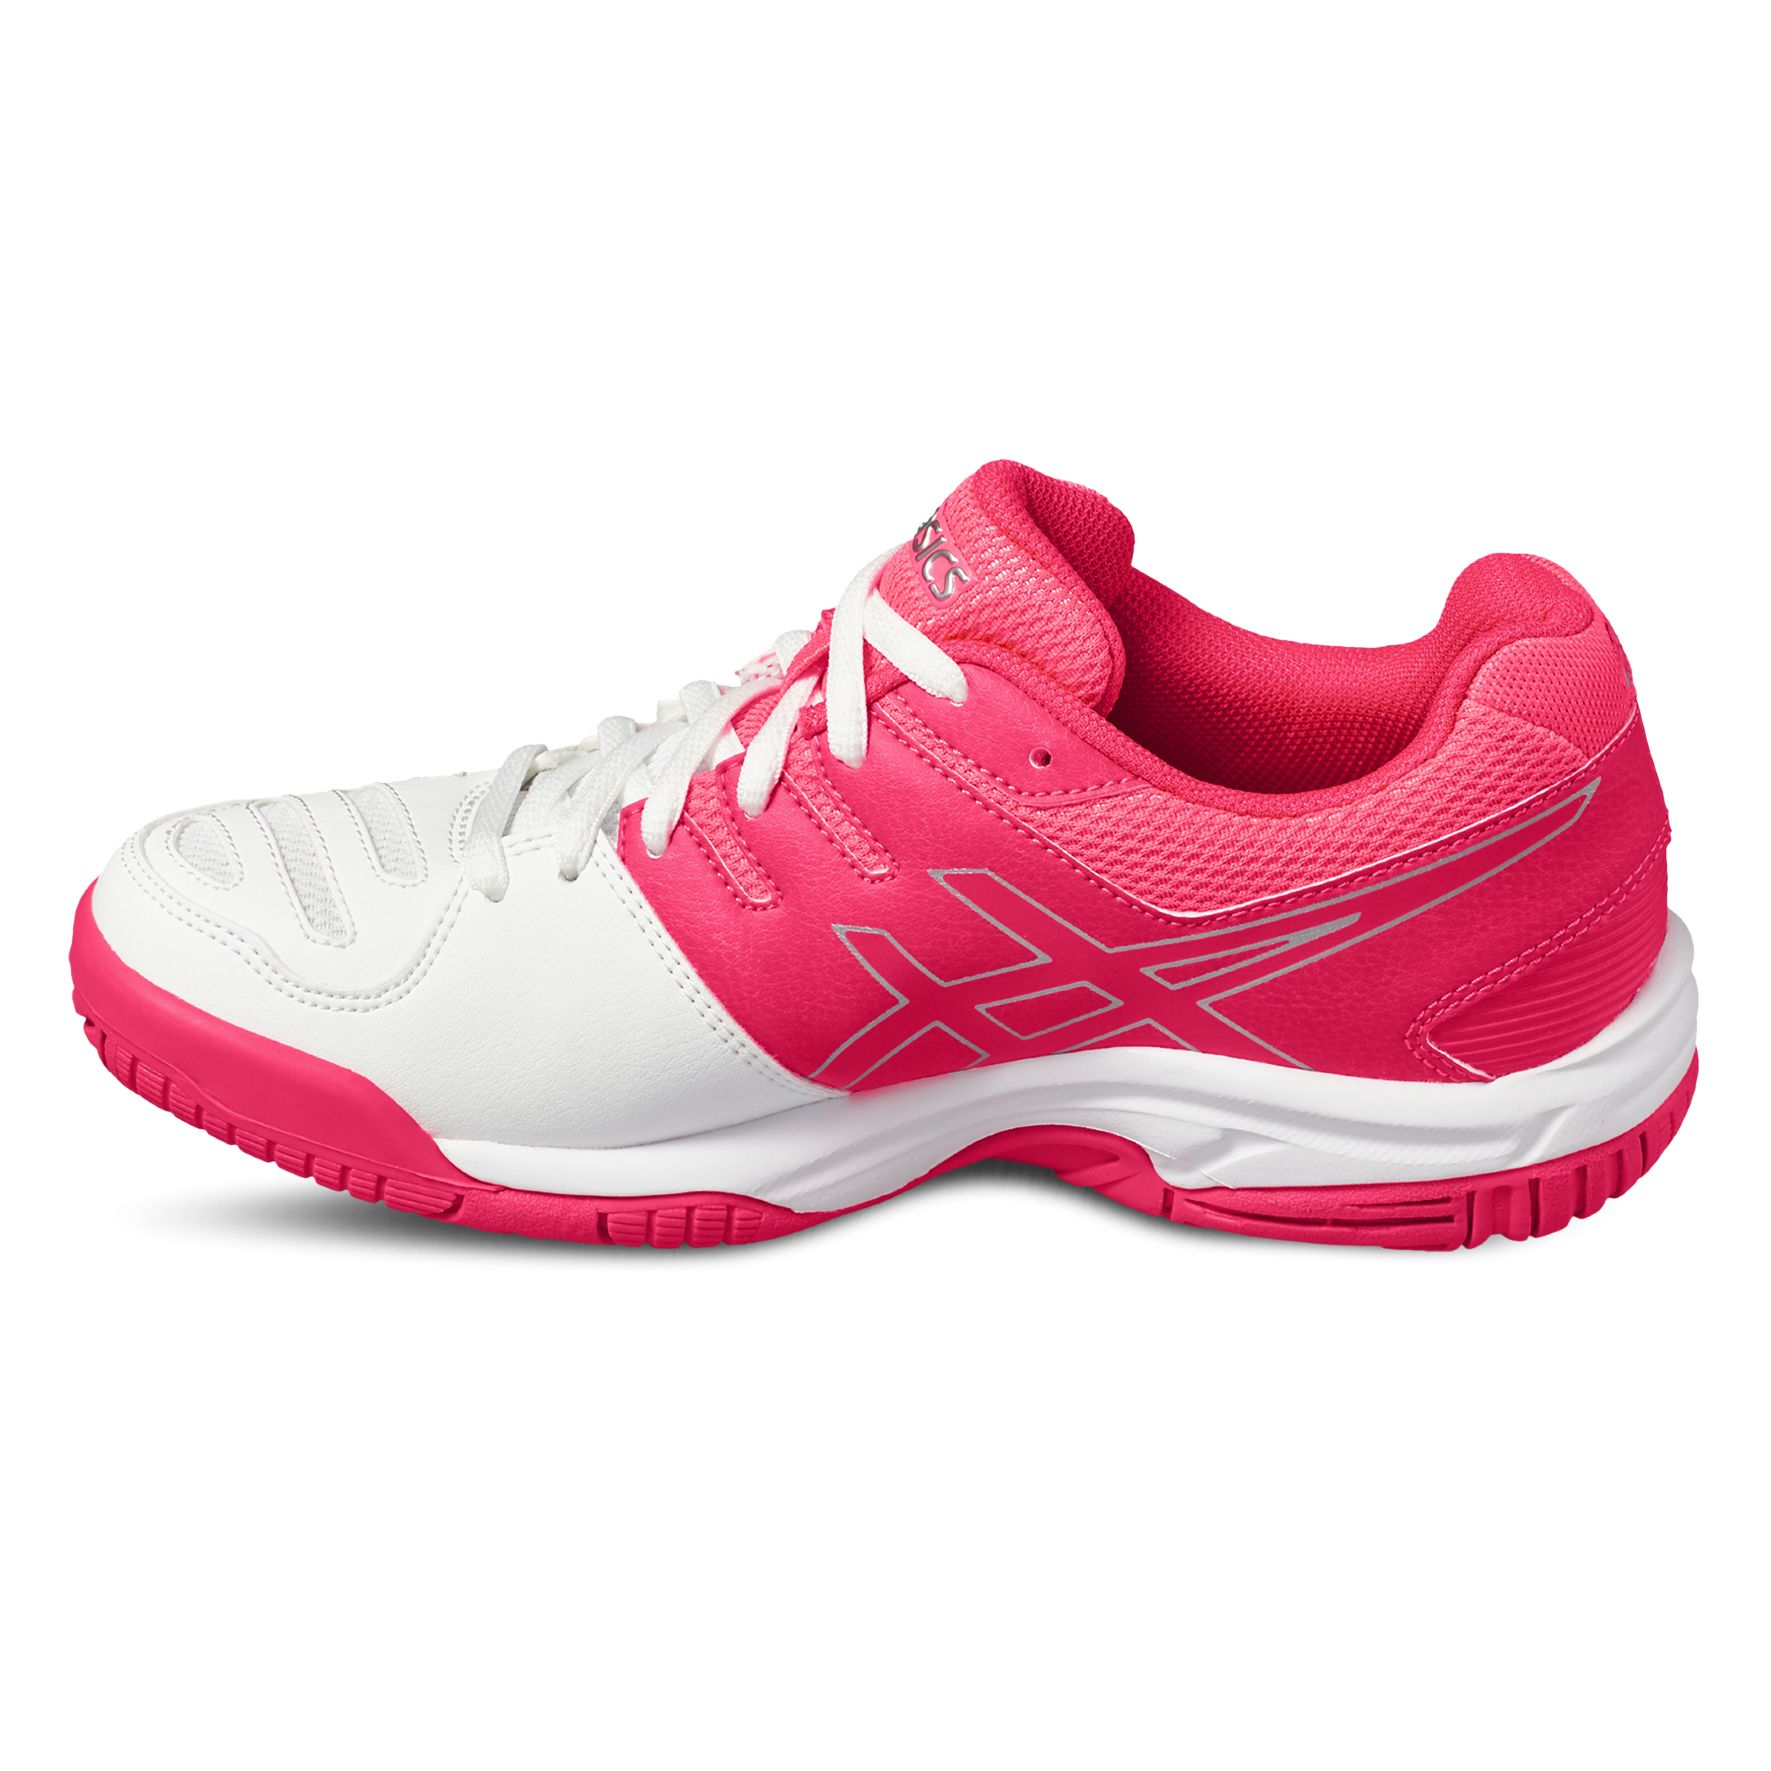 Girls Tennis Shoes Size